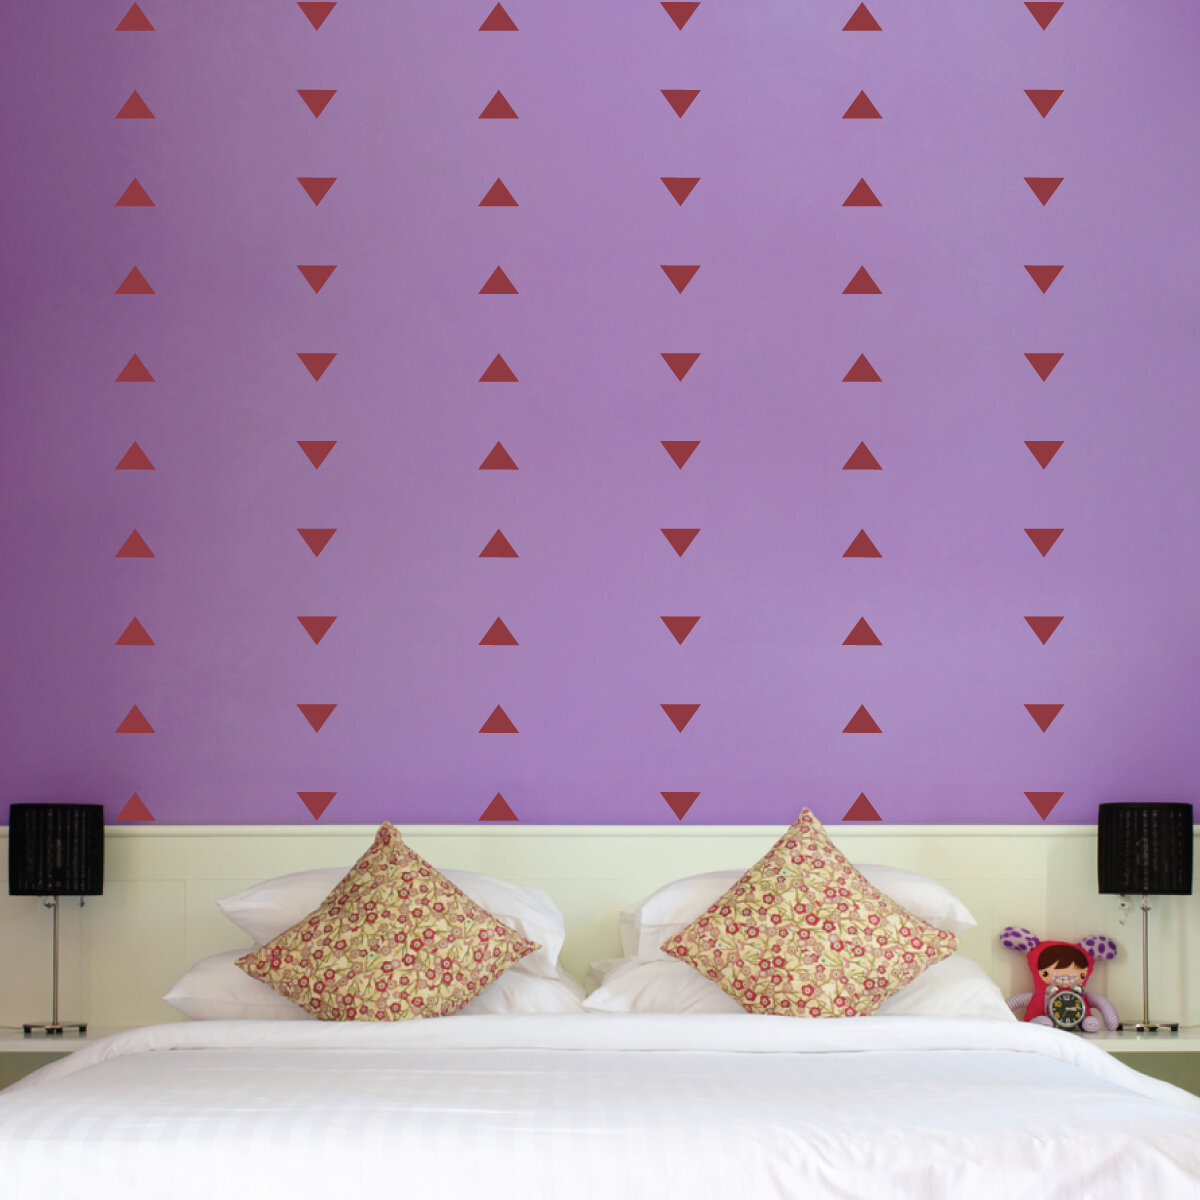 Wallums Wall Decor Triangle Decals